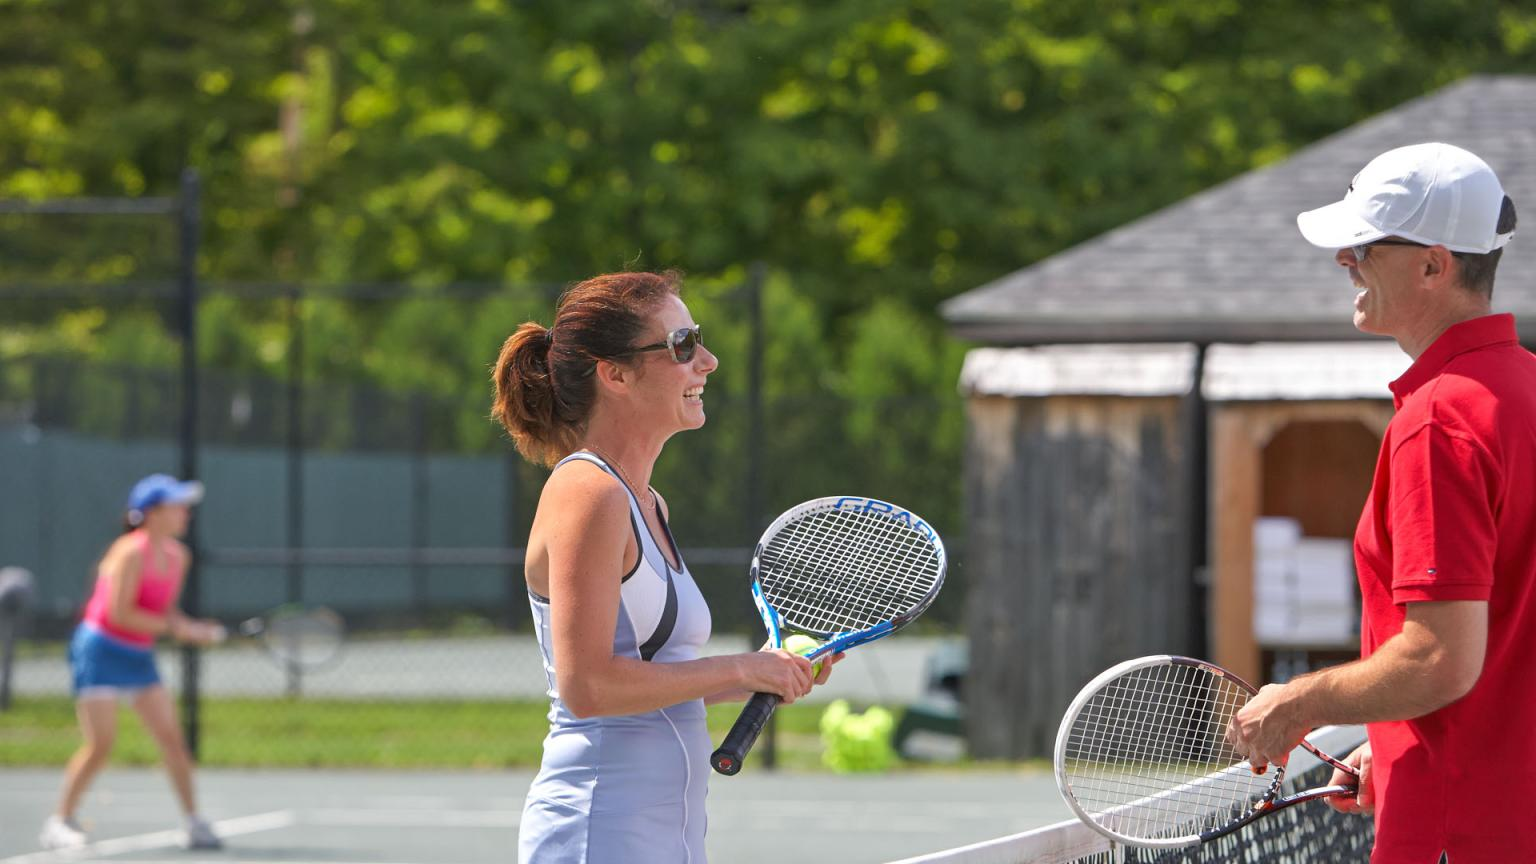 Racquet Sports in the Woodstock Area